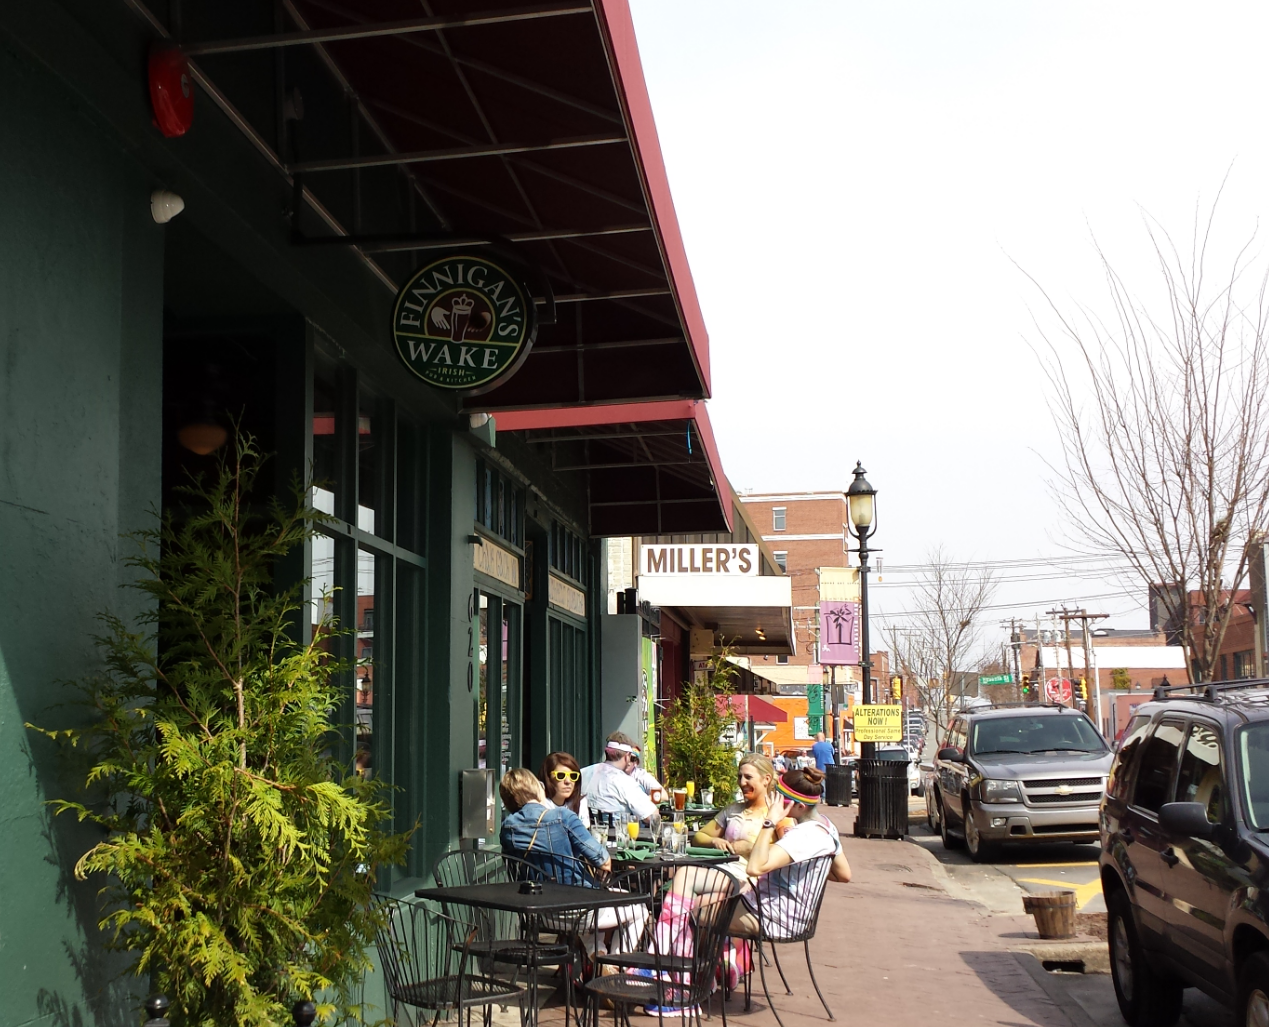 Sidewalk dining at Finnigan's